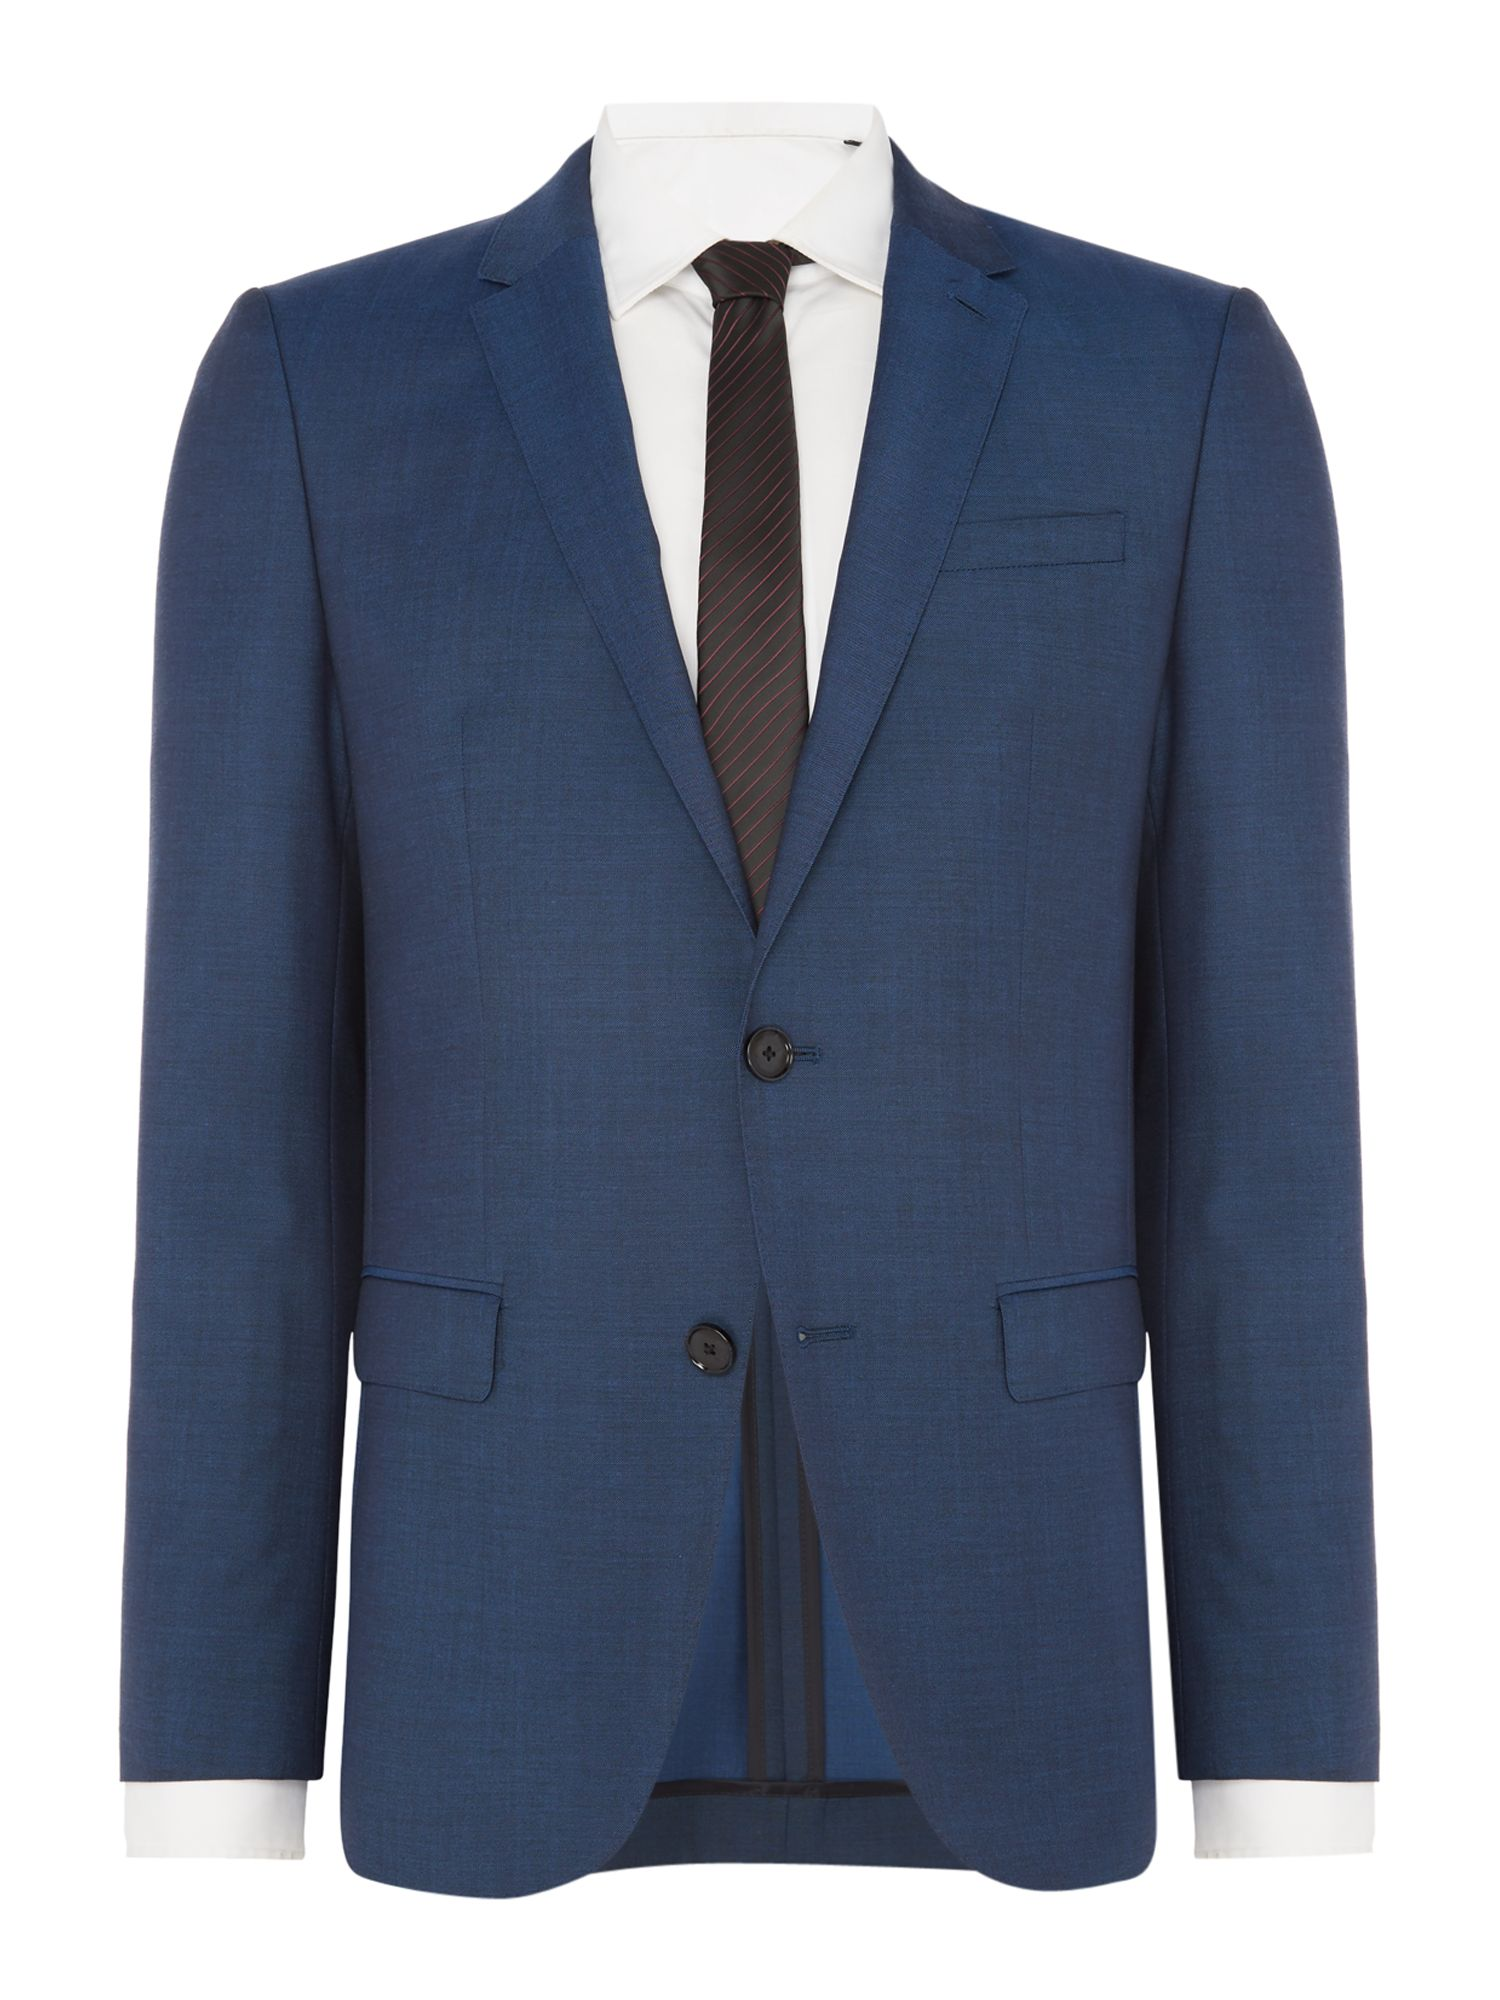 Men's Hugo Harvey Getlin Mohair Look Slim Fit Two-Piece Suit, Teal